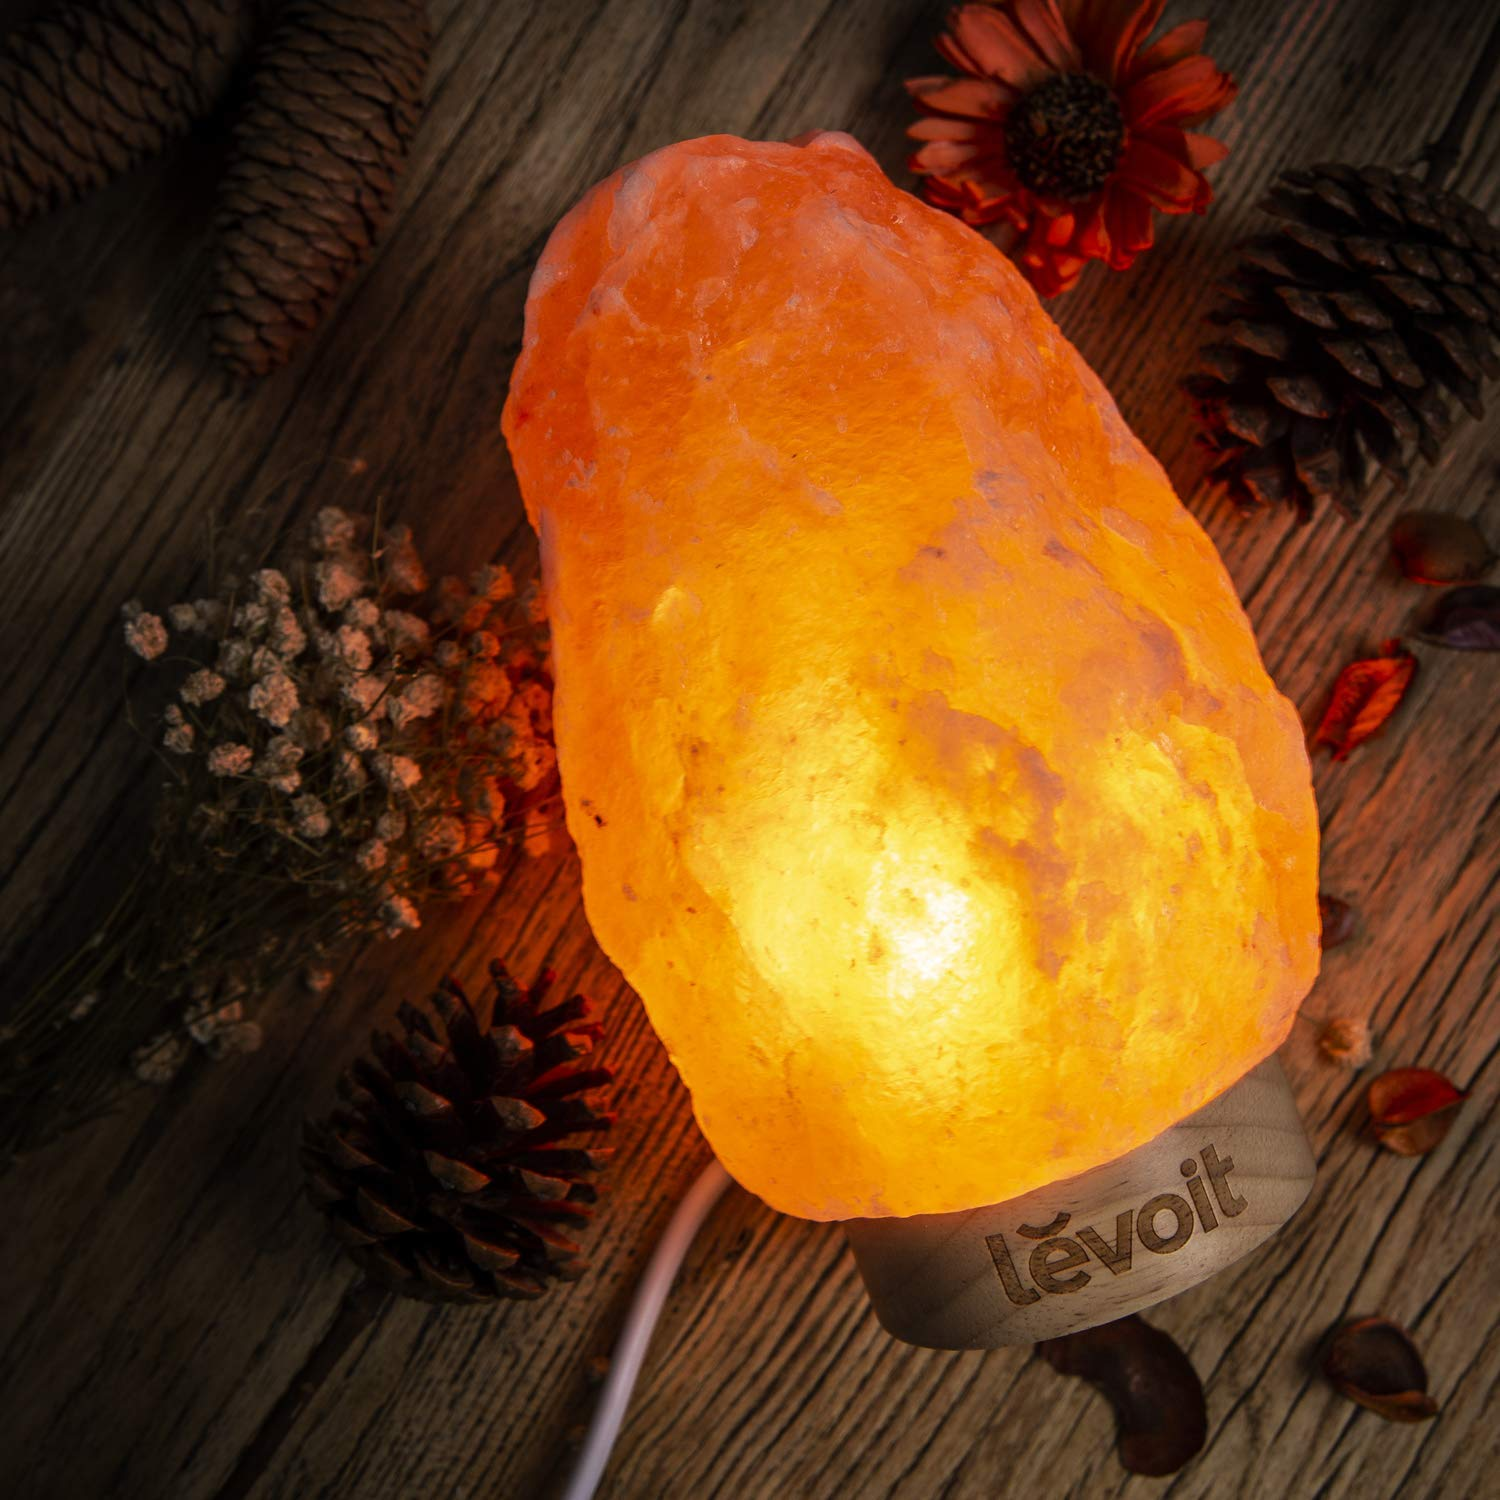 Levoit Kana Himalayan/Hymilain Sea, Pink Crystal Salt Rock Lamp, Night Light, Real Rubber Wood Base, Dimmable Touch Switch, Holiday Gift (ETL Certified, 2 Extra Bulbs), by LEVOIT (Image #10)